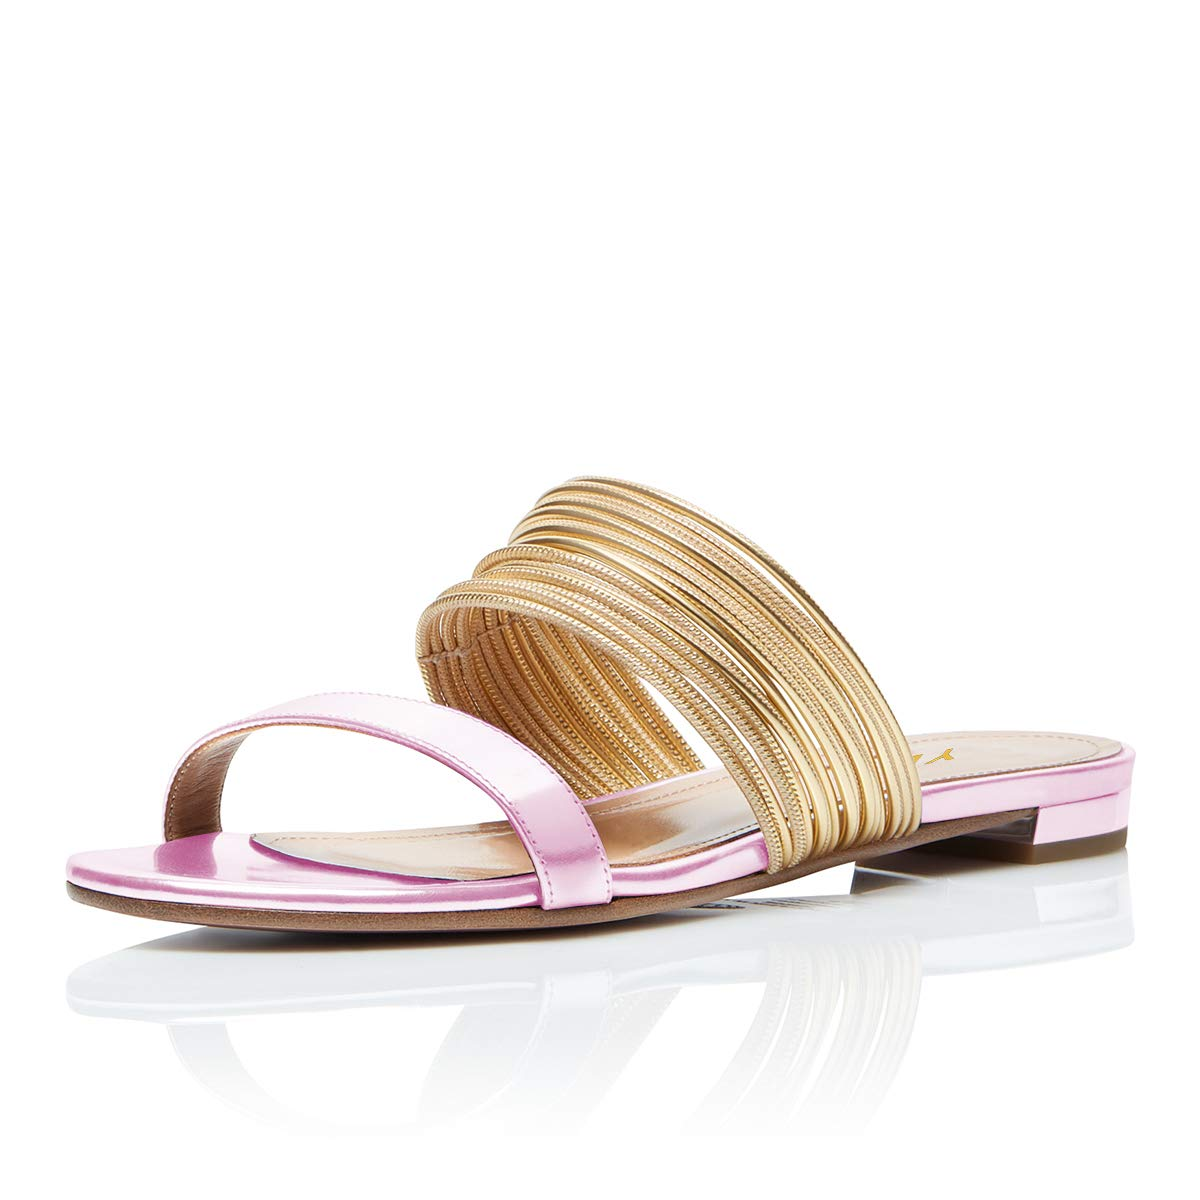 YDN Women Fashion Open Toe Low Heel Mules Sandals Slip on Clogs Slide Shoes Pink 10